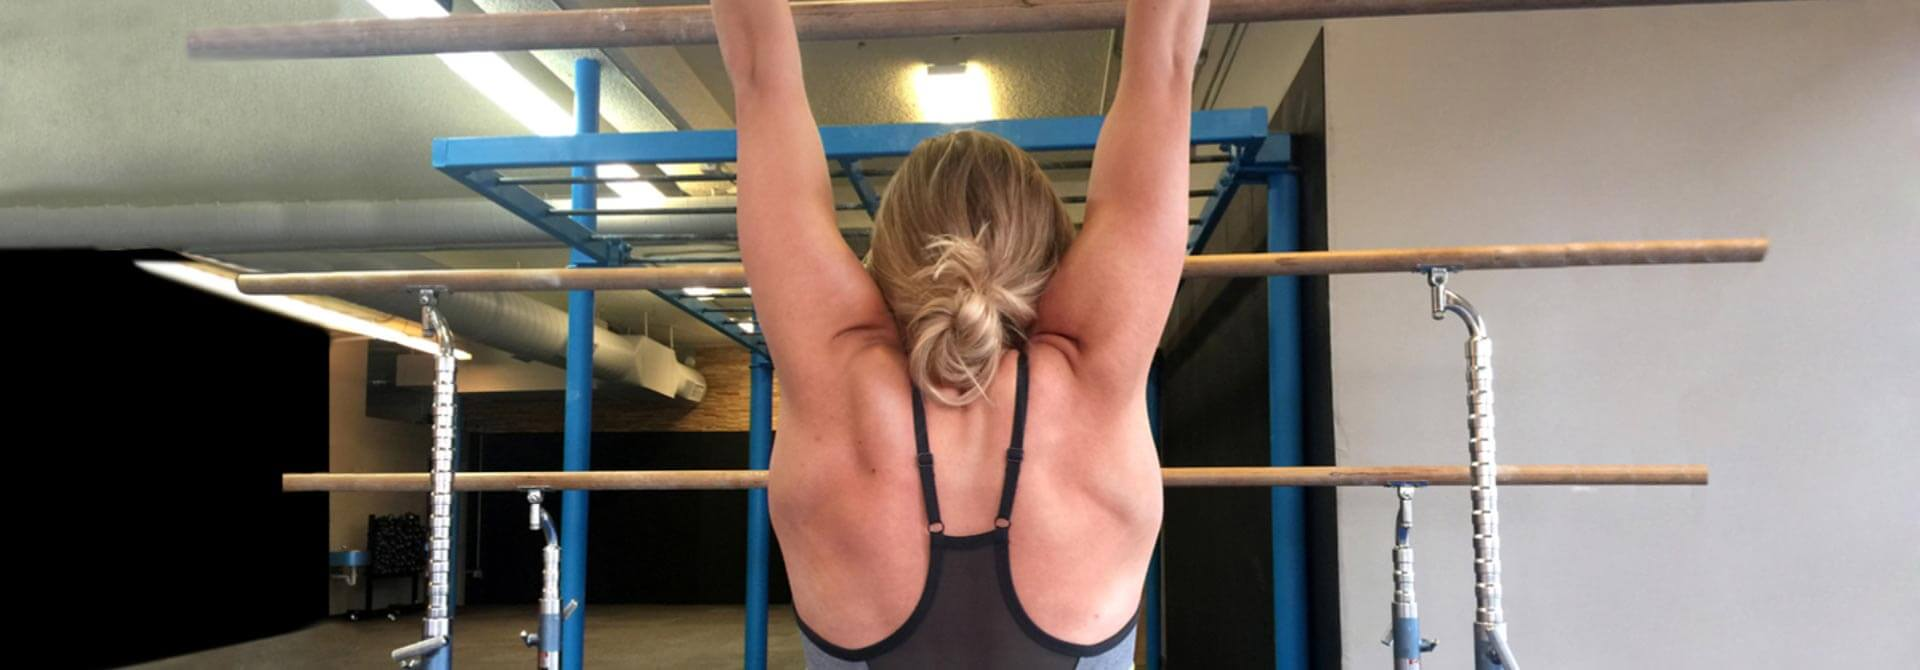 GymnasticBodies female athlete demonstrates a basic shoulder strengthening exercise.